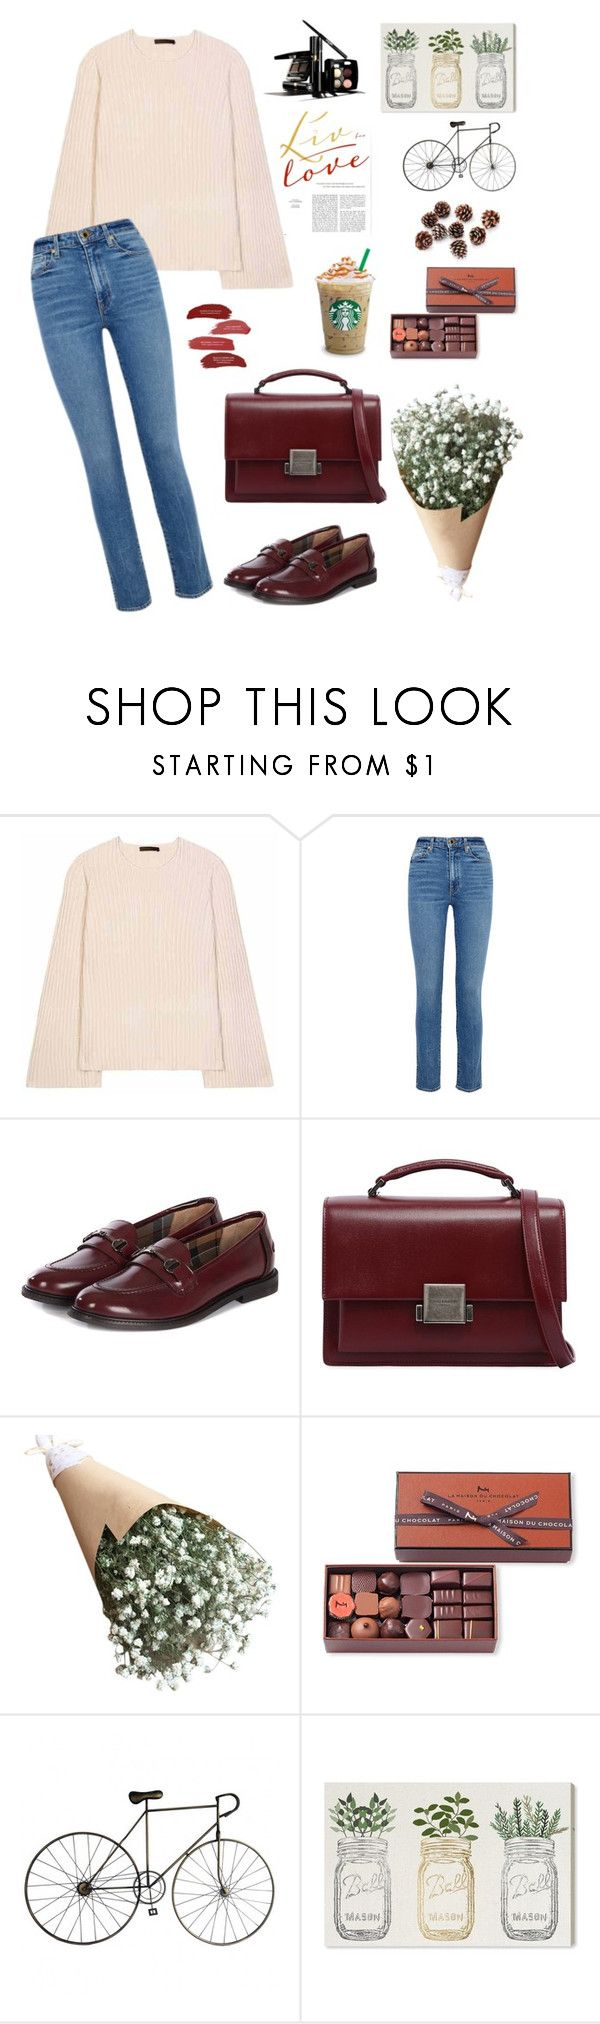 """Без названия #89"" by whereismygenie ❤ liked on Polyvore featuring The Row, Khaite, Barbour, Yves Saint Laurent, Chanel, La Maison Du Chocolat, Oliver Gal Artist Co. and pastelsweaters"